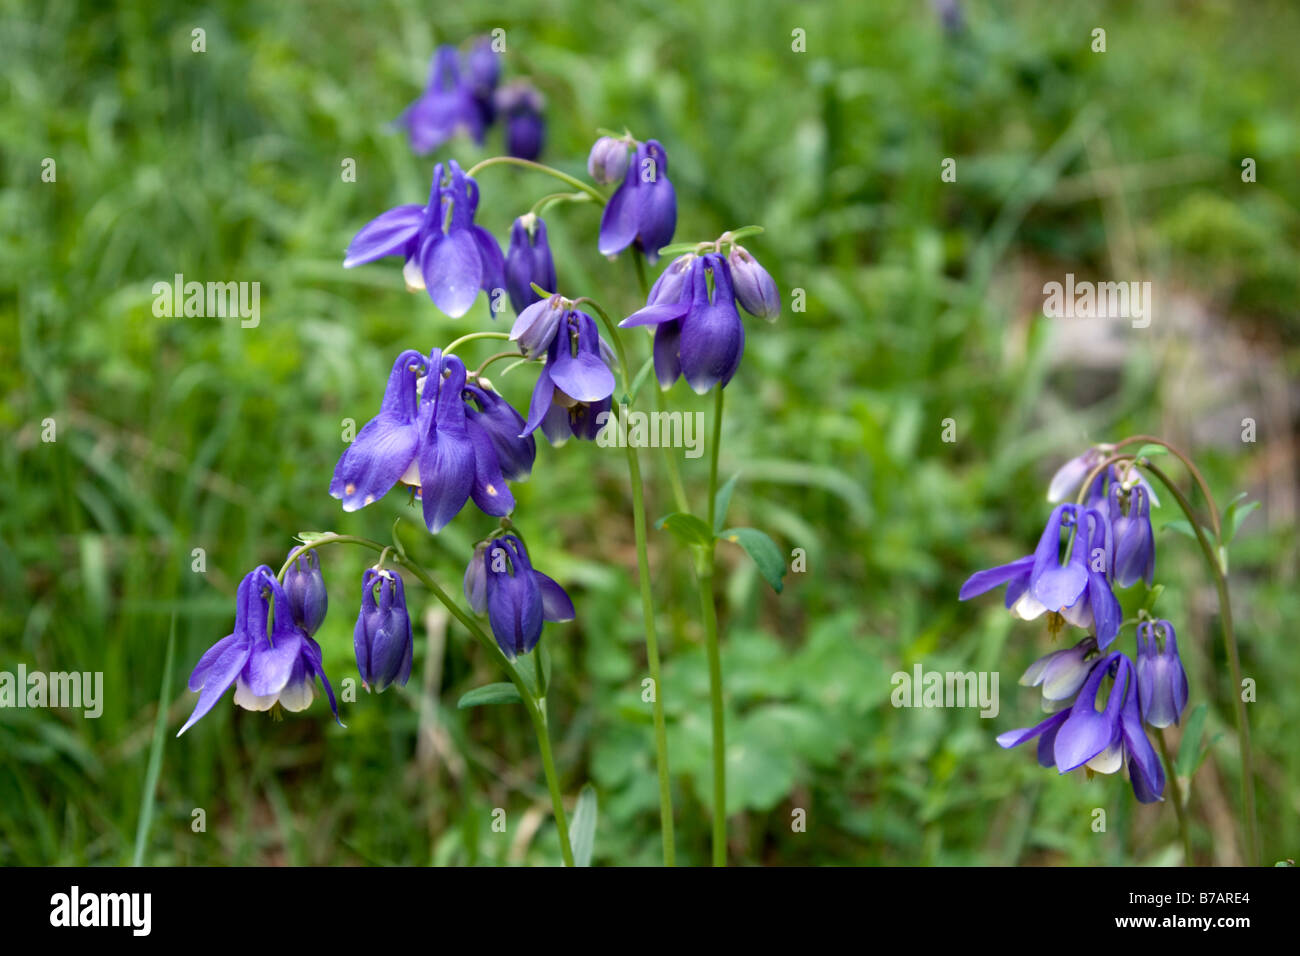 Bluebell flowers at Kanas national park in Xinjiang in China. - Stock Image